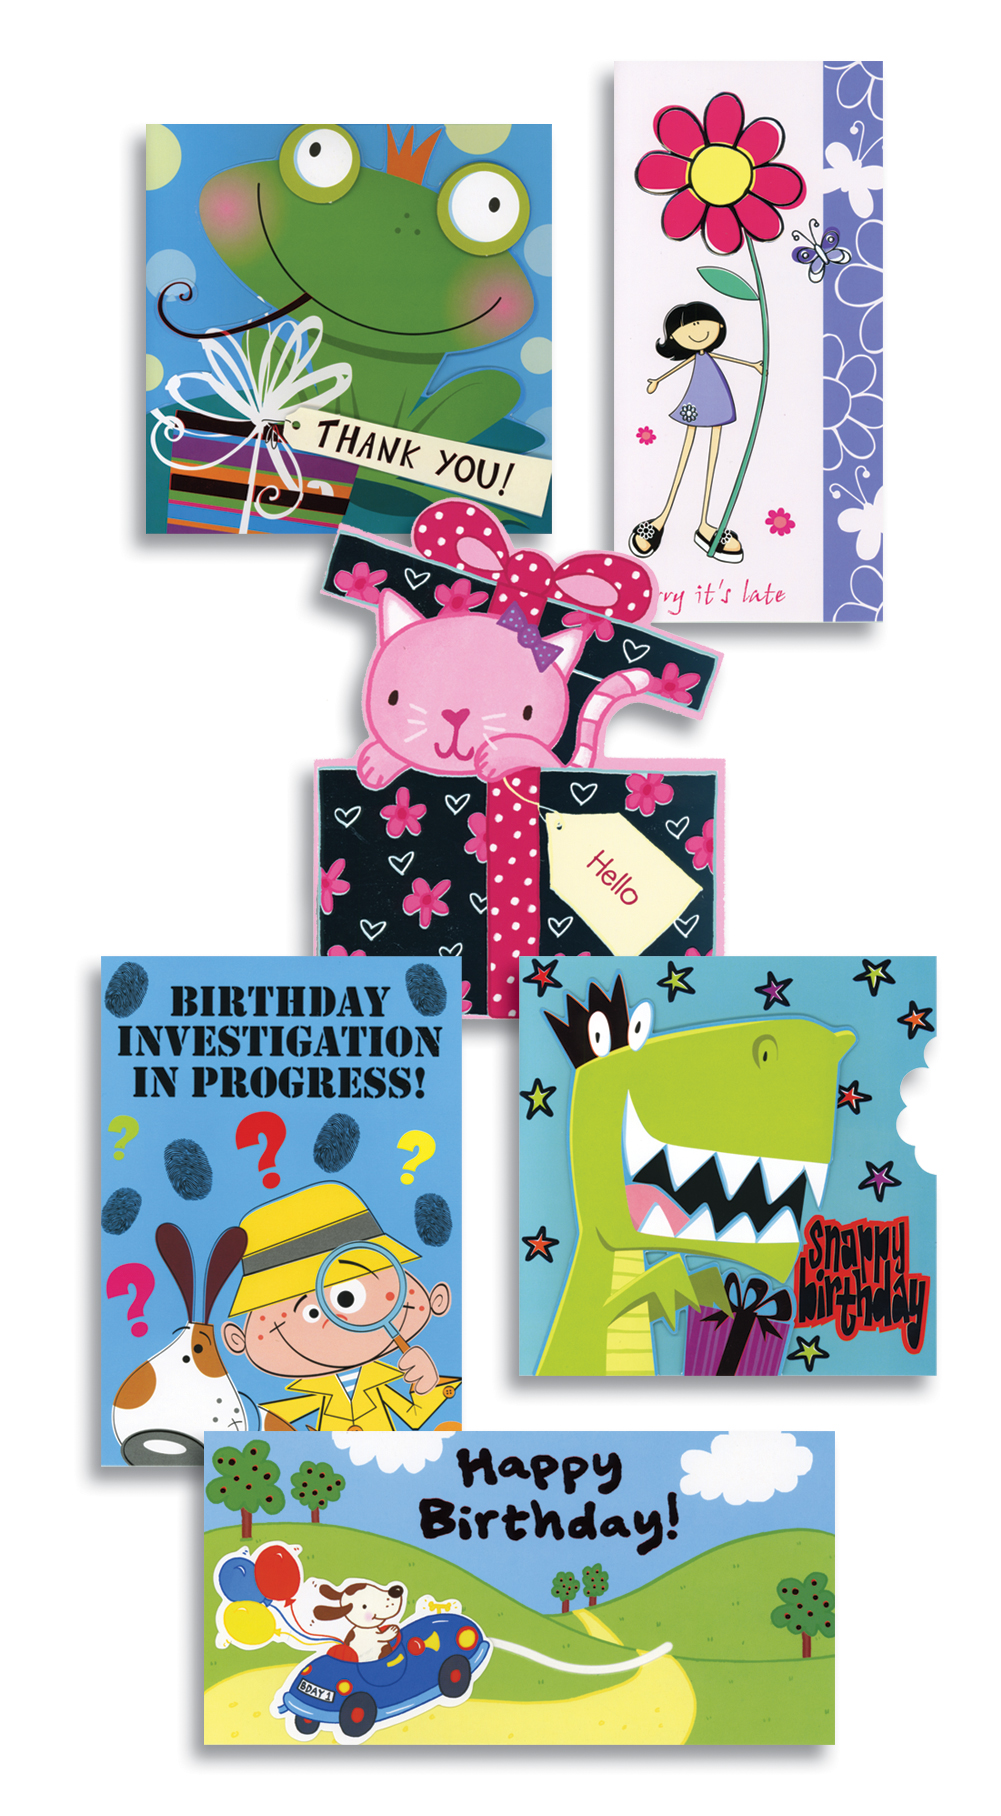 Usborne Books & More offers these adorable cards with CARDS FOR A CAUSE Fundraiser. Cost is $30 a box shipping included- your group keeps $13!